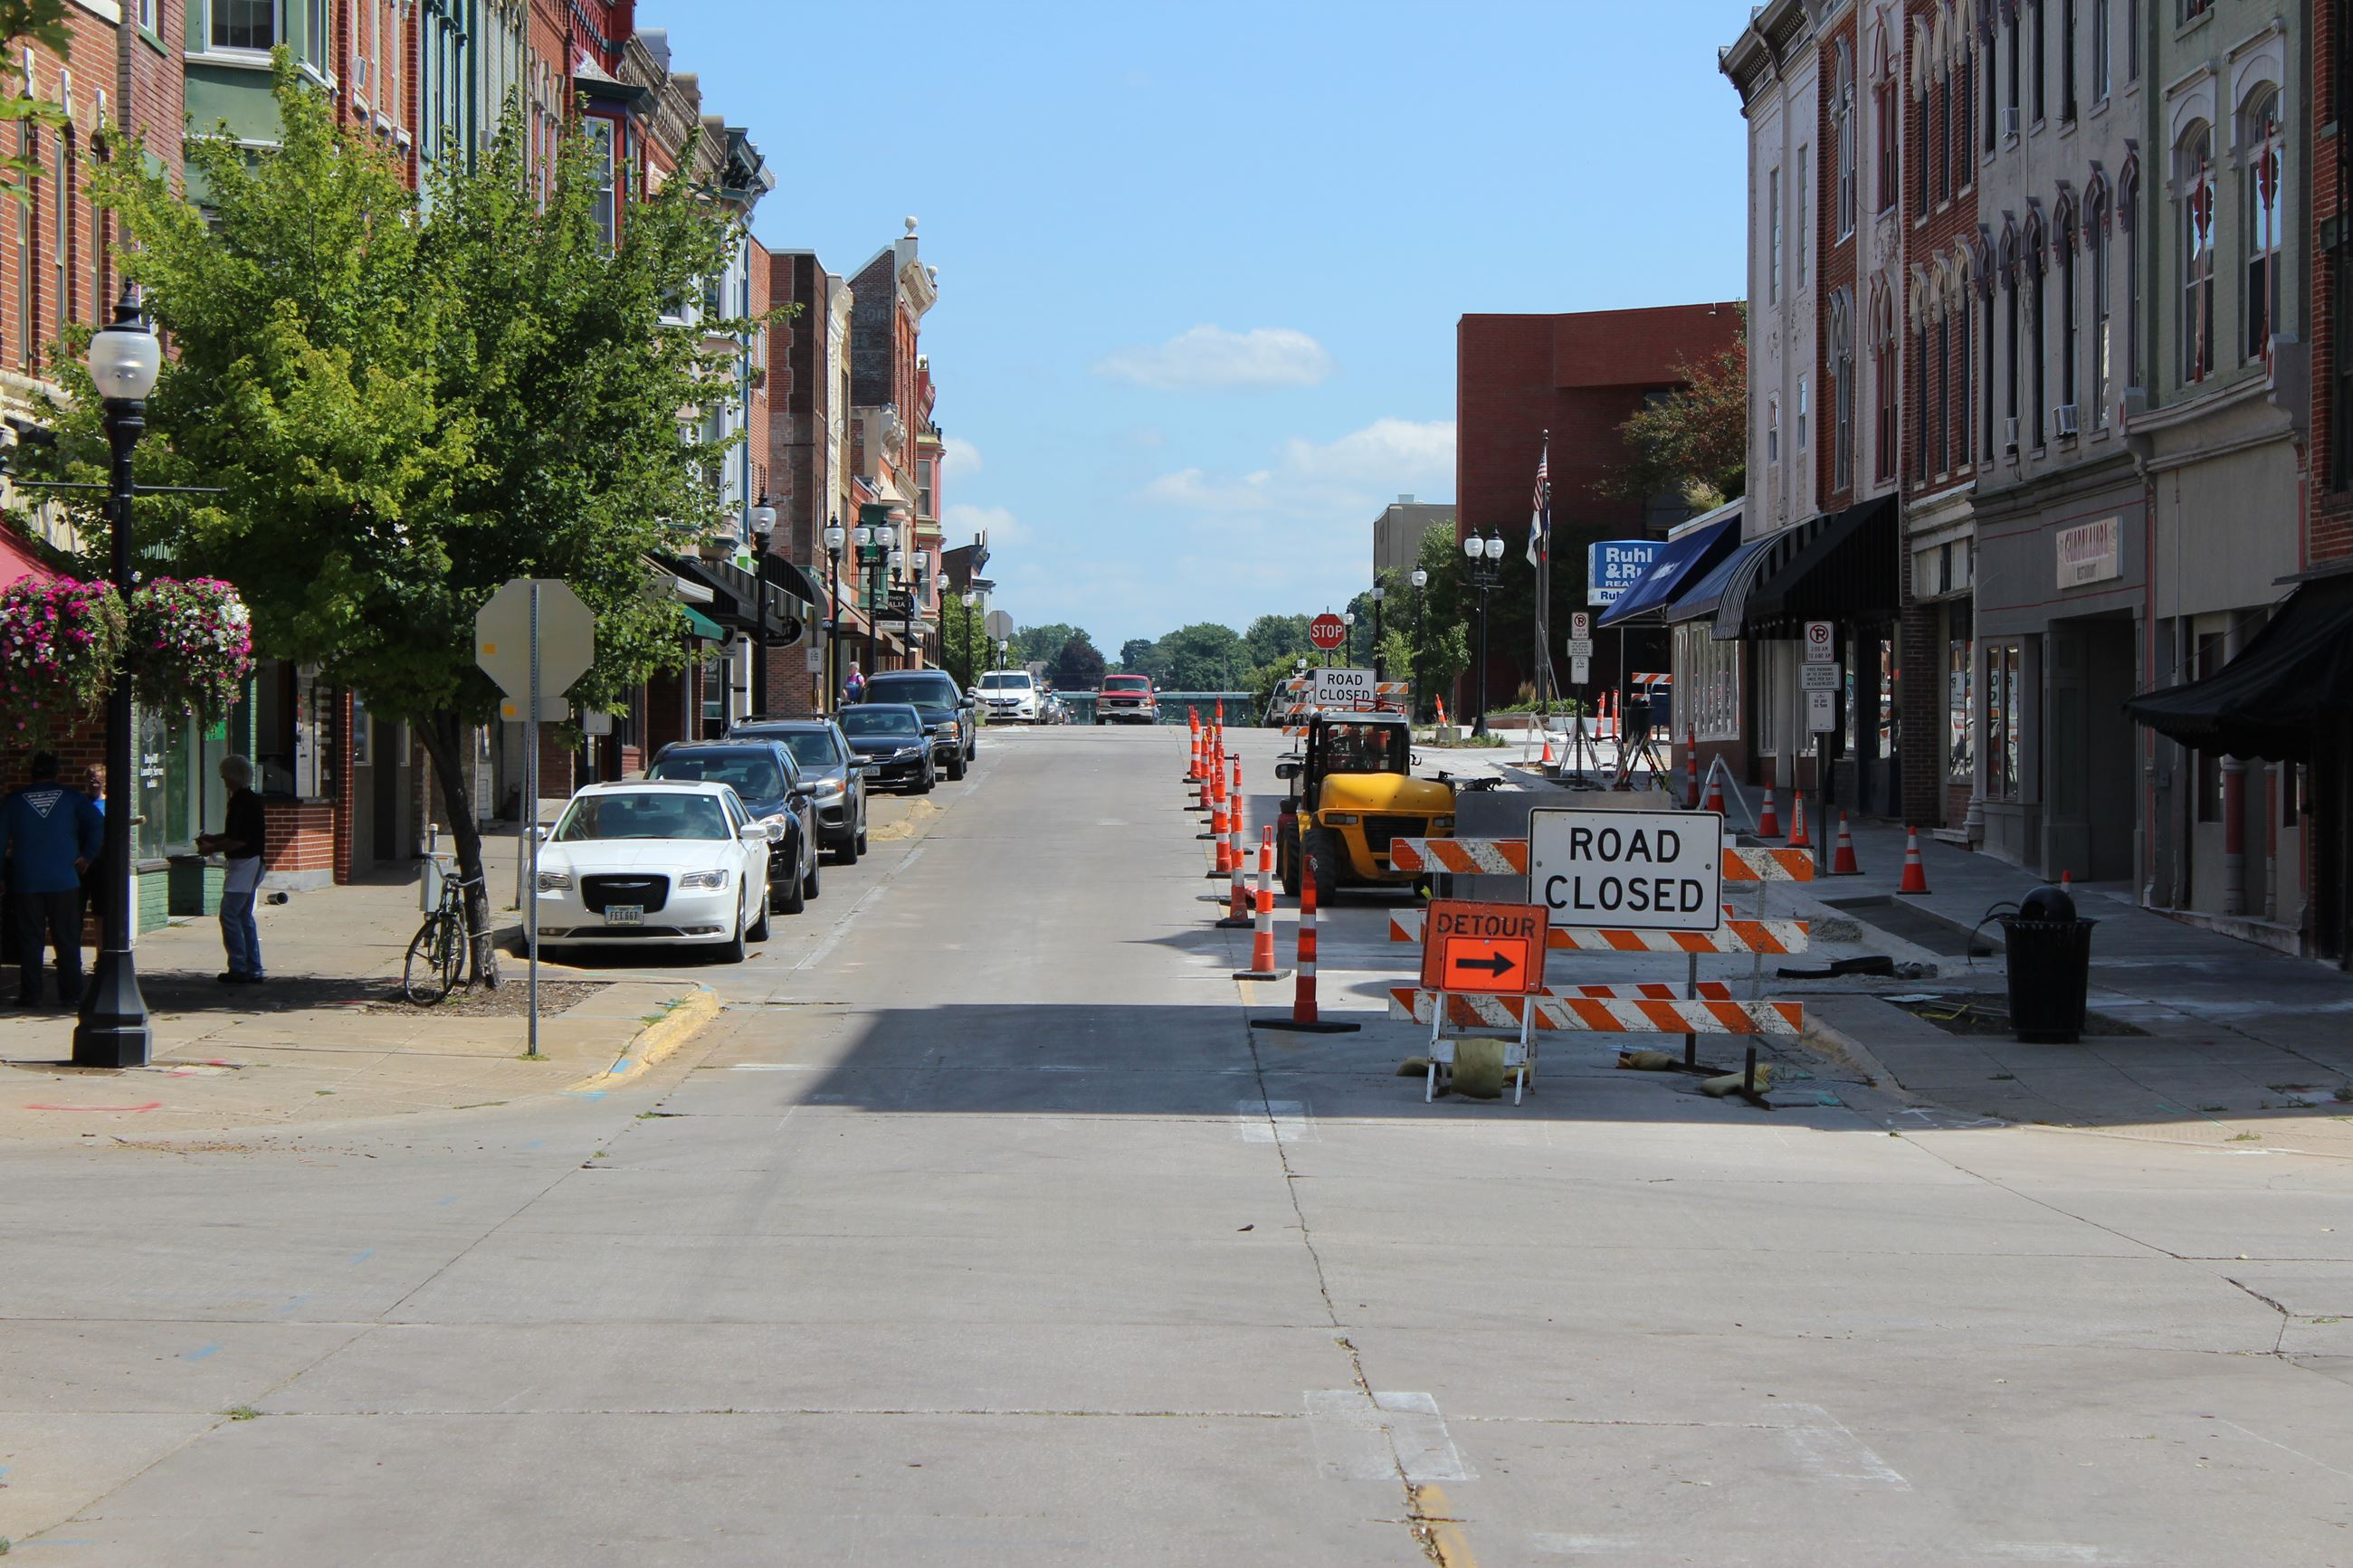 081220 2nd Street - looking east toward 200 block of East 2nd Street 001 (JPG)